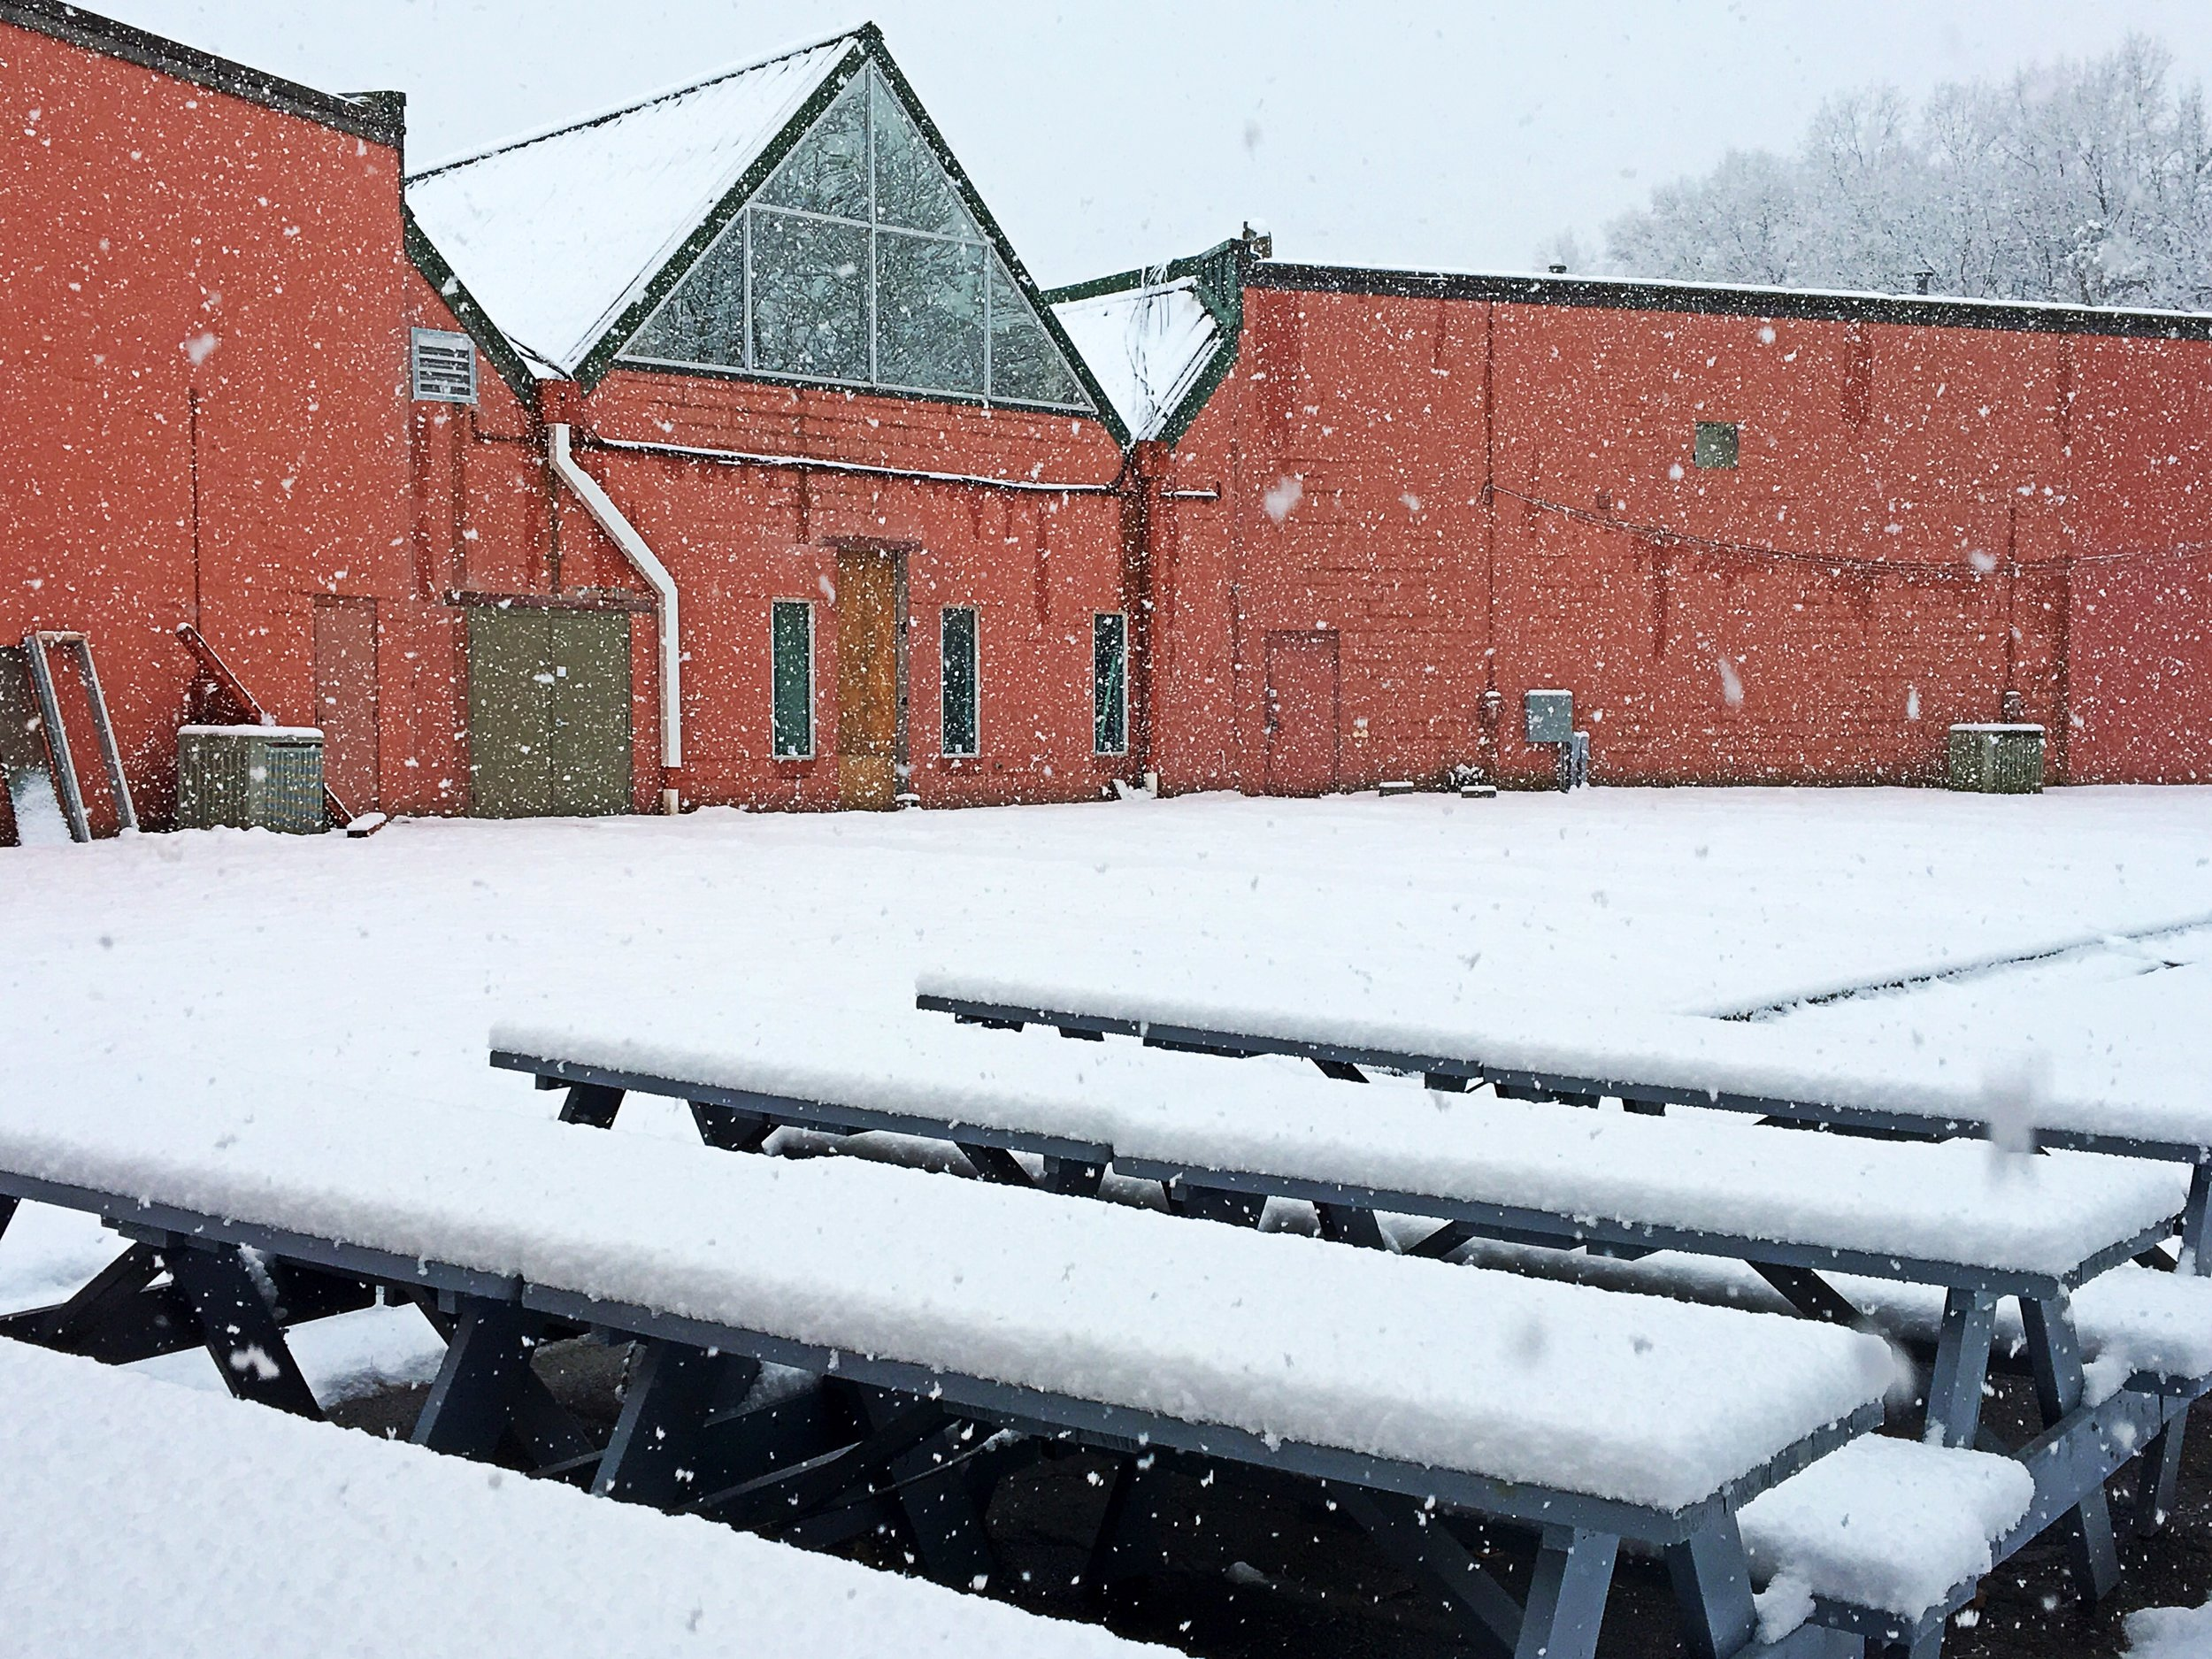 The future beer garden covered in snow in the middle of the snowstorm last Wednesday.